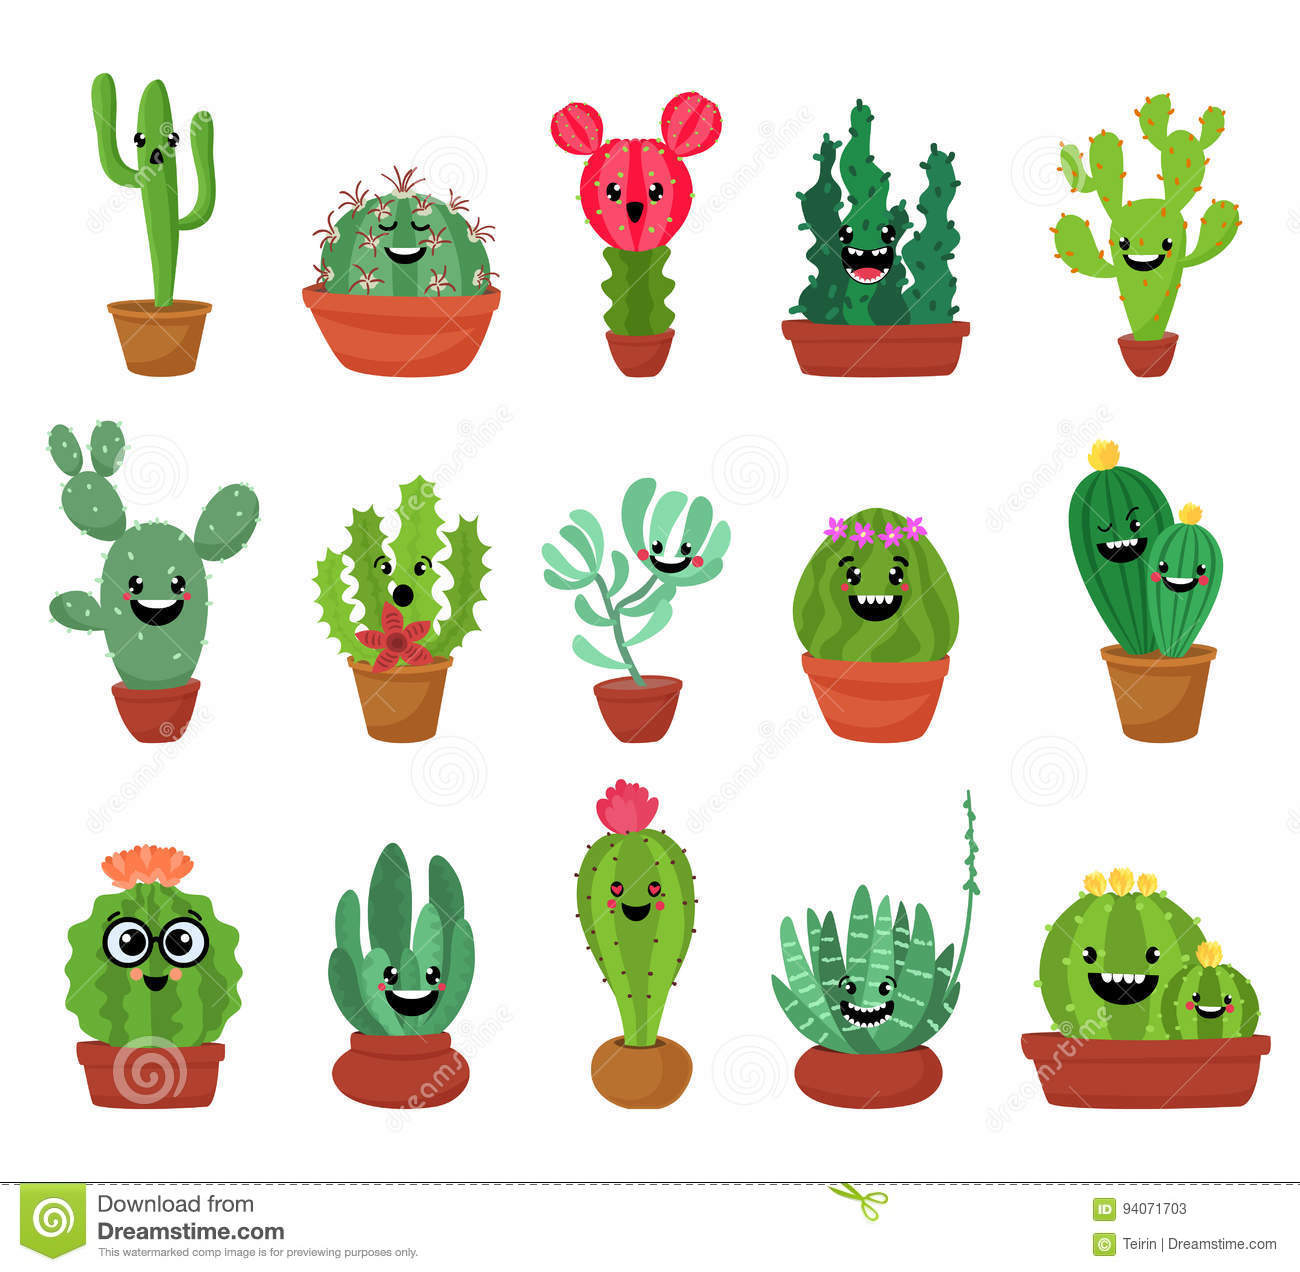 Cute Stickers For Facebook Big Set Of Cute Cartoon Cactus And Succulents With Funny Faces